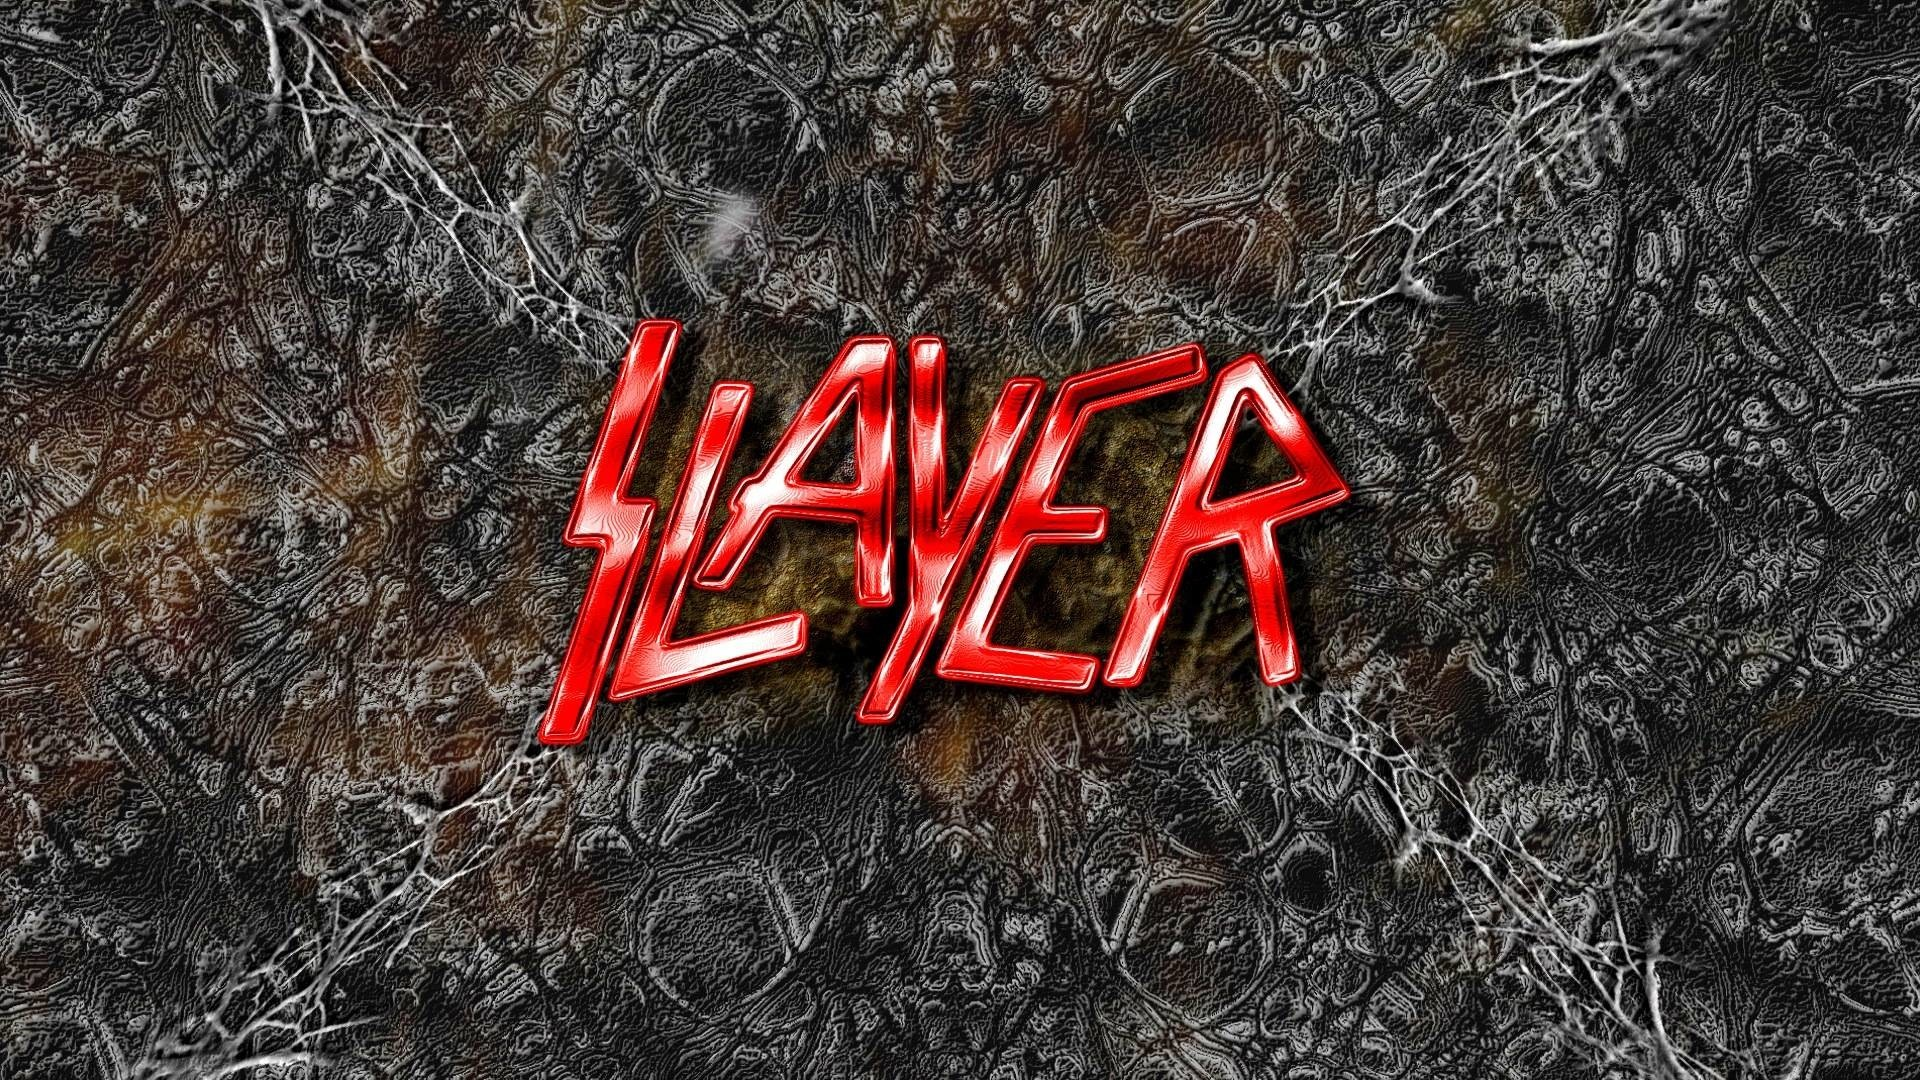 1920x1080  Wallpapers For > Slayer Band Wallpaper